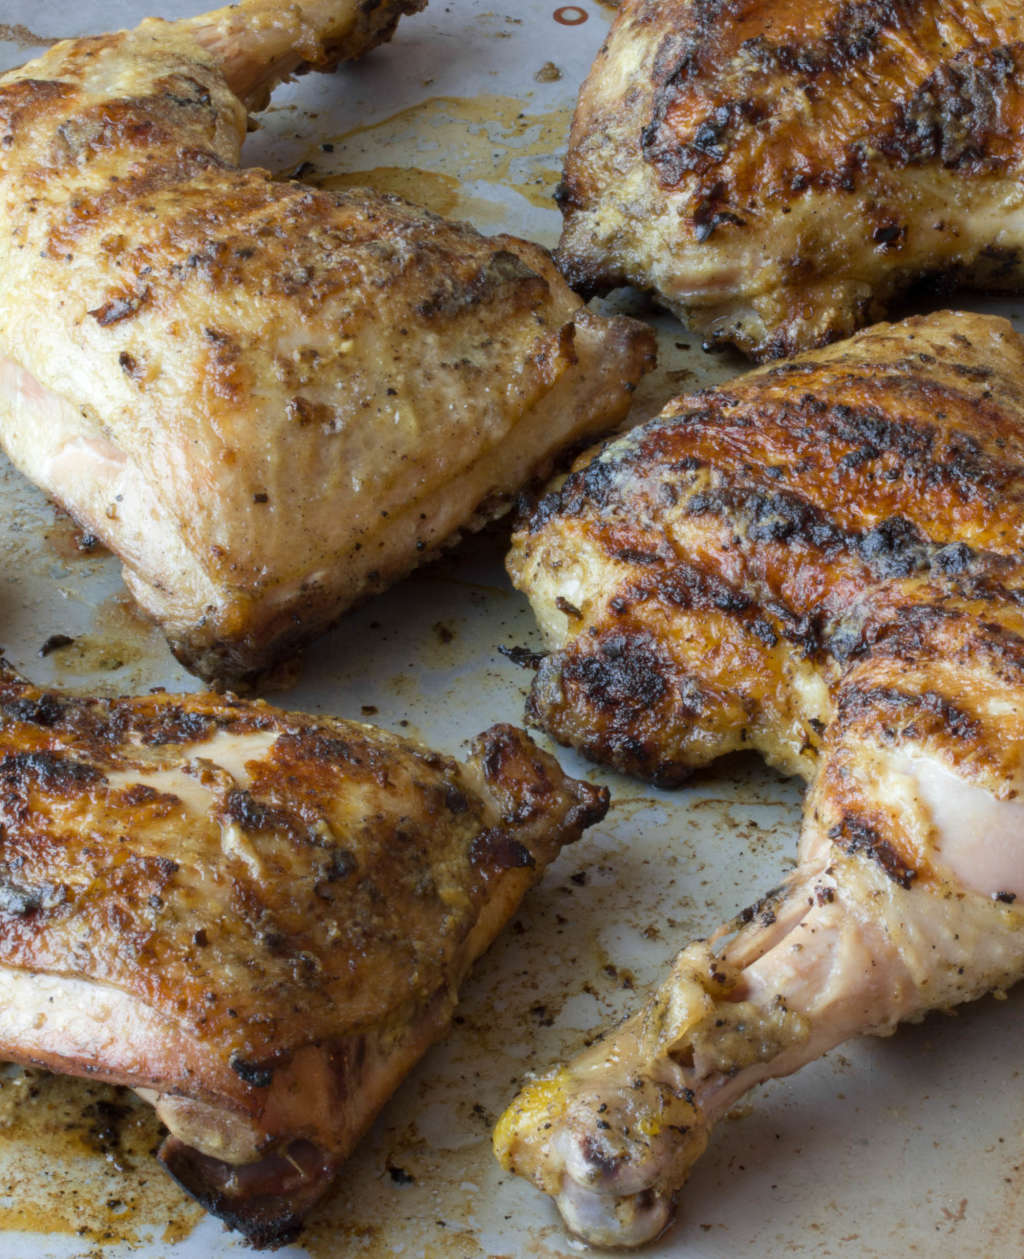 Grill Recipe: Grilled Chicken Legs with Dijon & White Wine Glaze